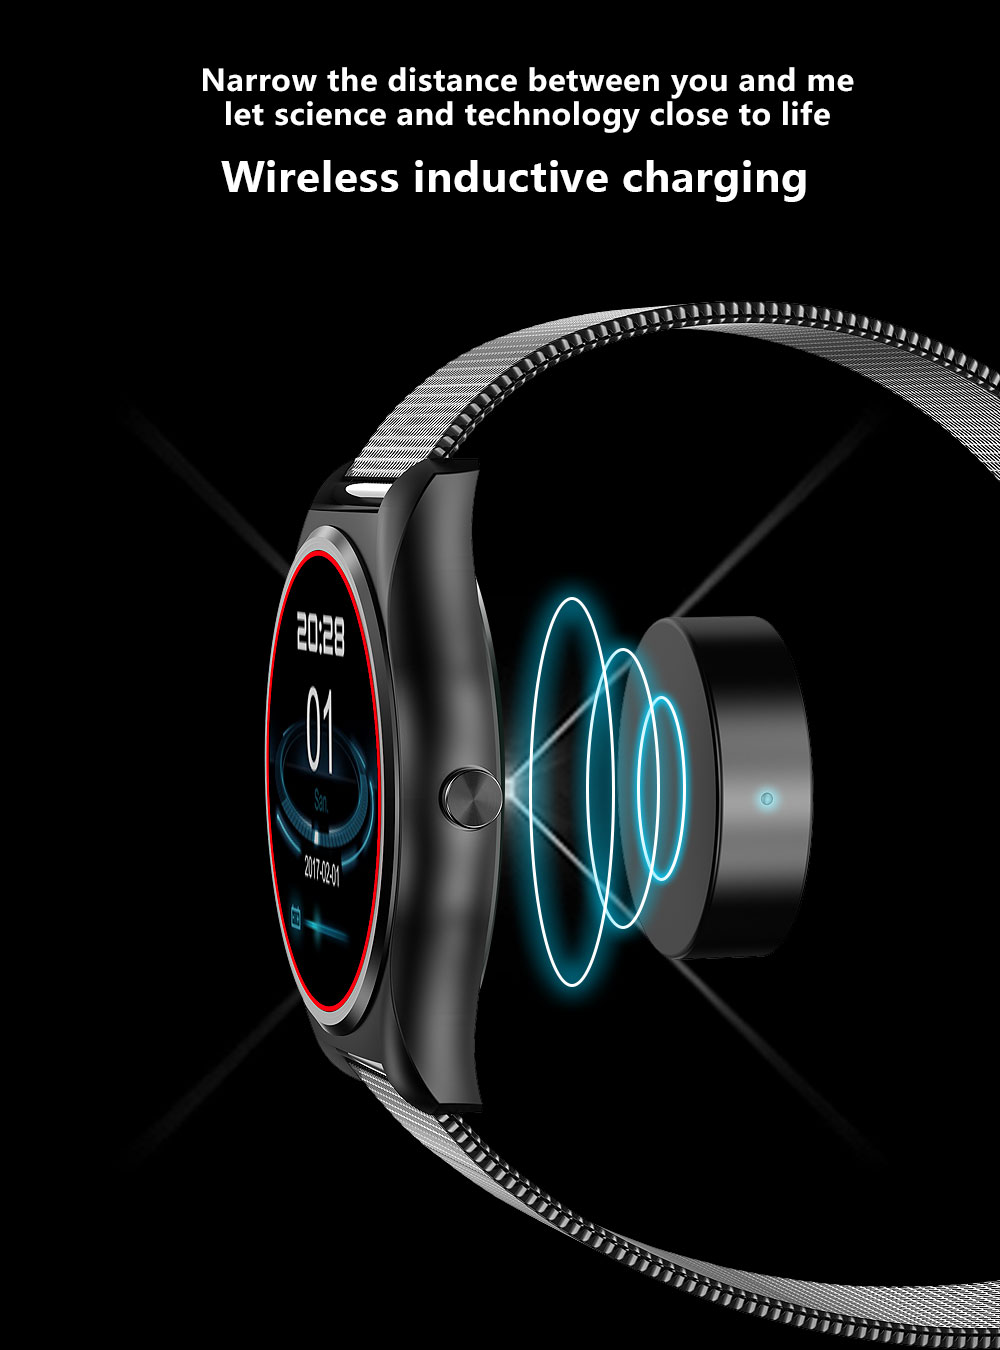 Round Clock MTK2502c Wireless Charging Smart Watch N3 Heart Rate Bluetooth Call SMS Sync Smartwatch for iOS Android pk K88h G6 iwo 5 wireless charger bluetooth smart watch with heart rate ecg 9 clock faces watch pedometer for android ios phone pk iwo 3 2